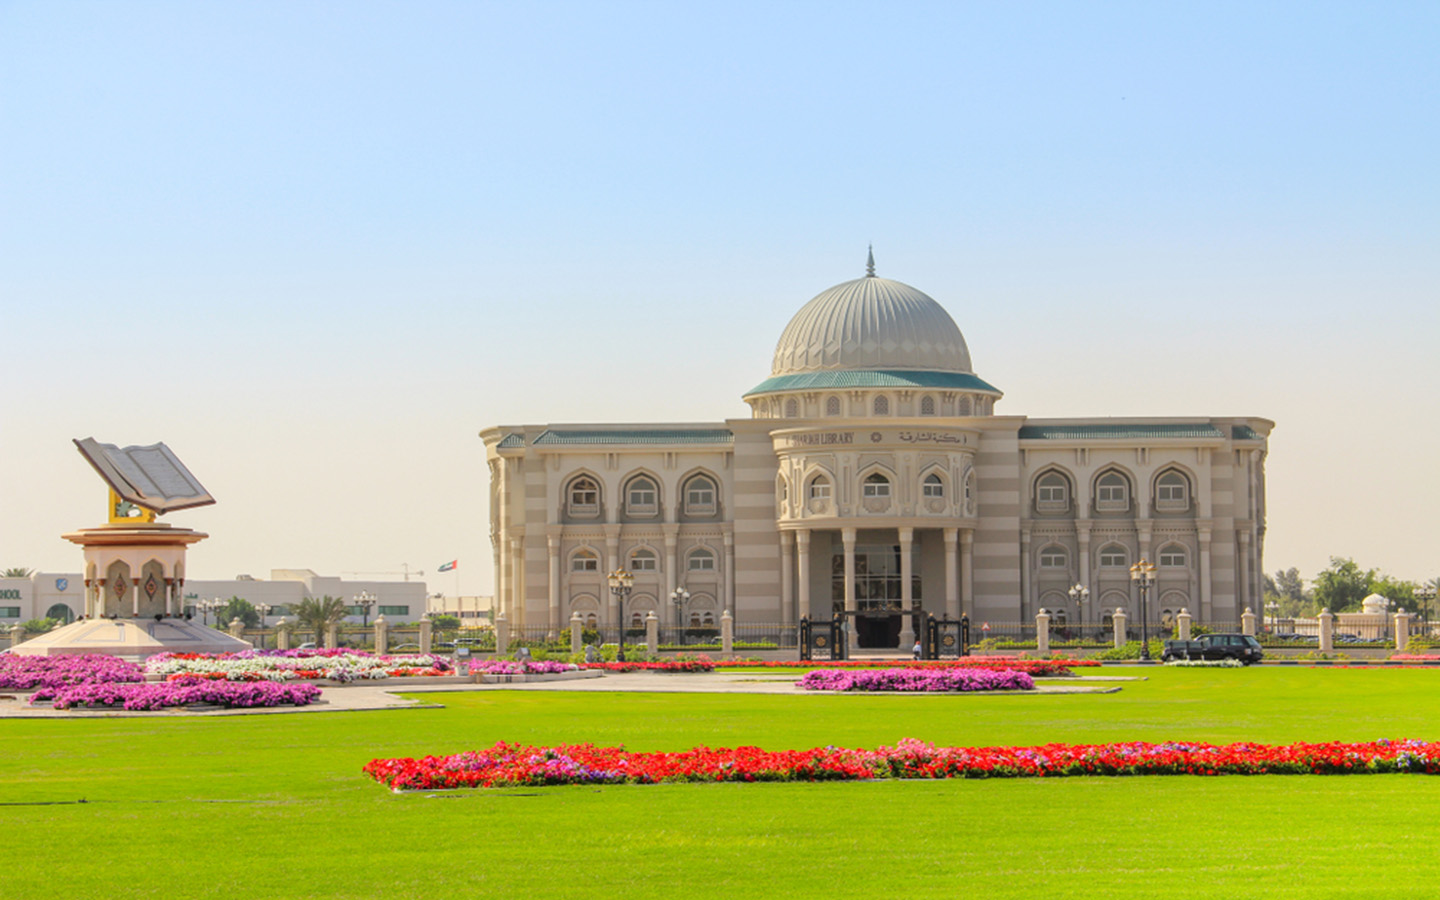 One of oldest libraries in Sharjah